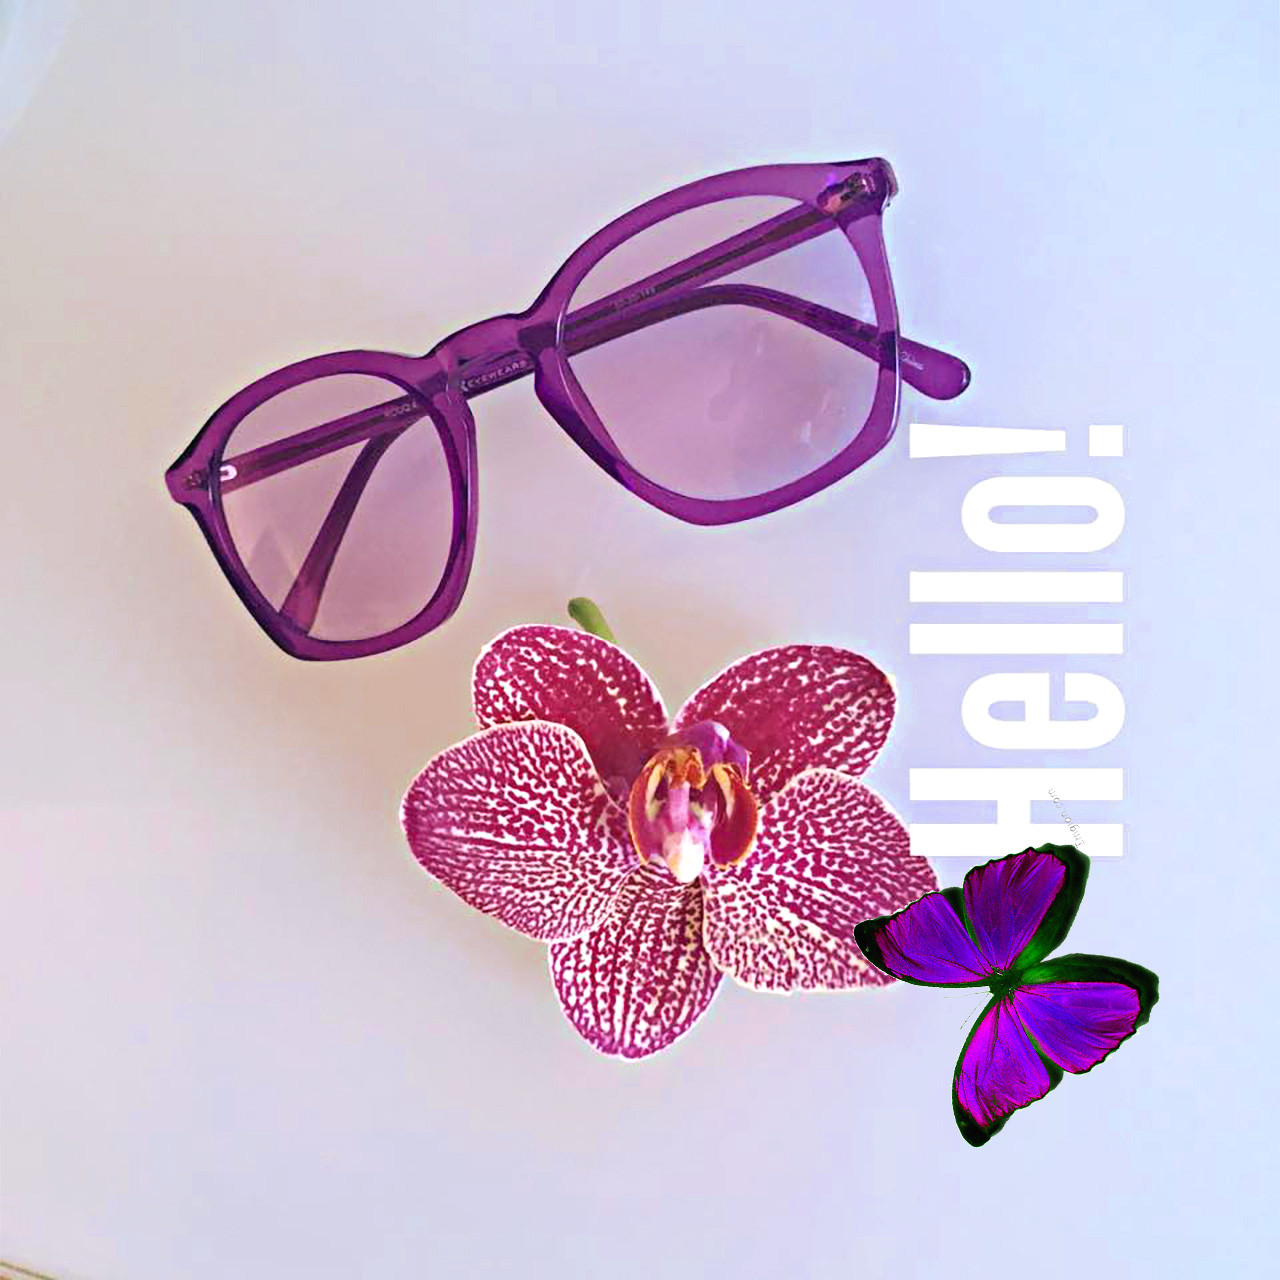 GEEK COUTURE 4 Sunglasses Purple